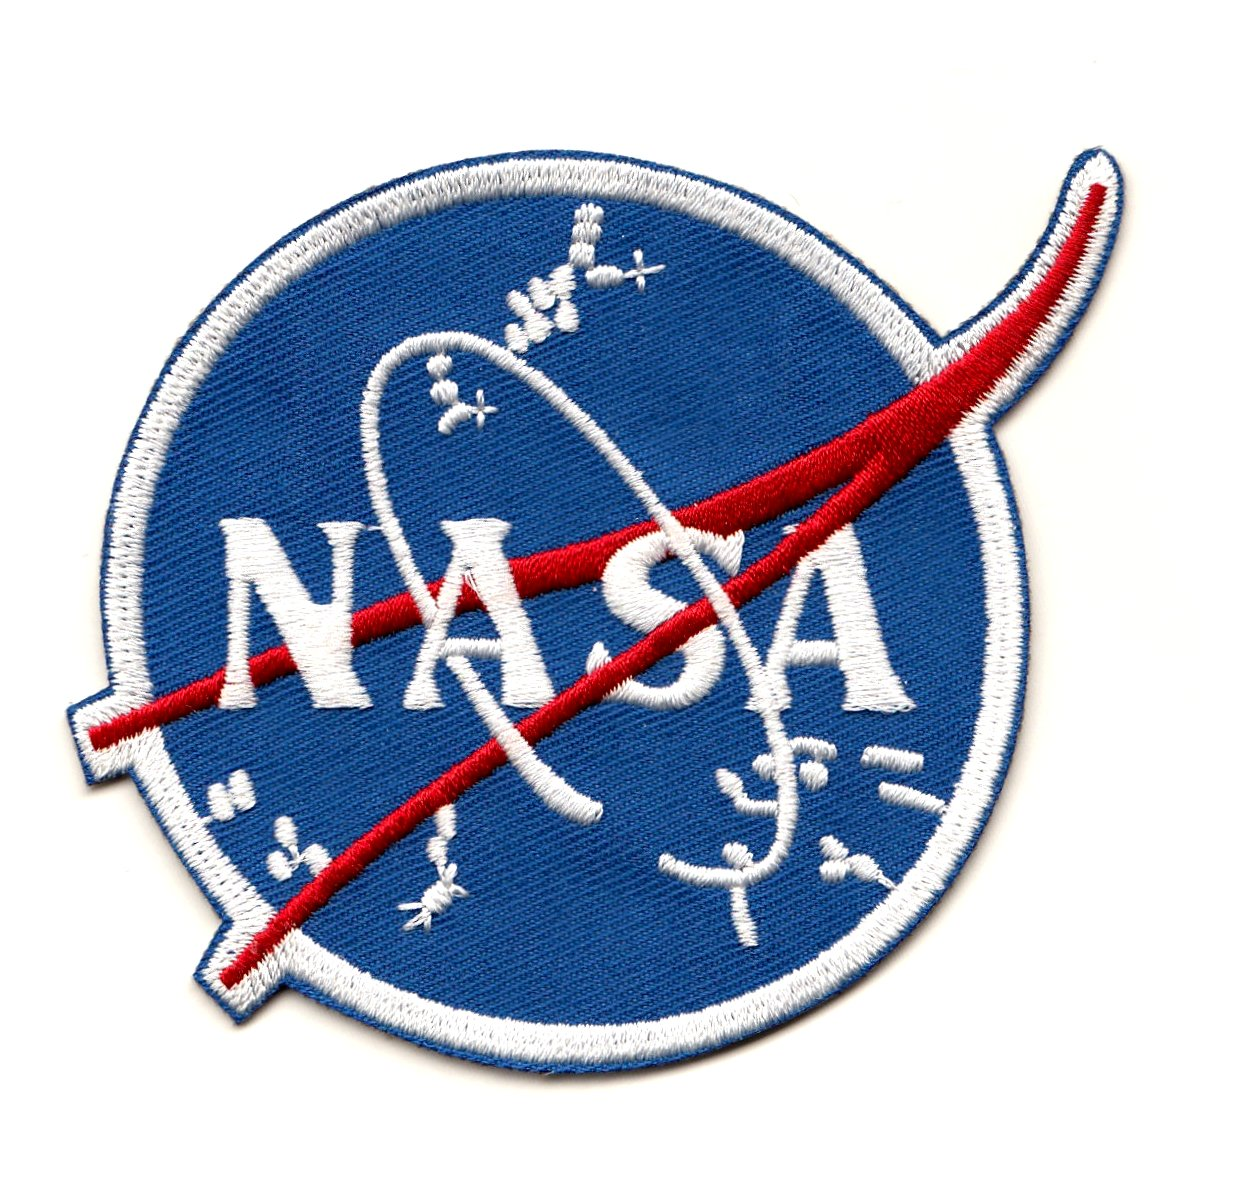 nasa astronaut wings logo - photo #19